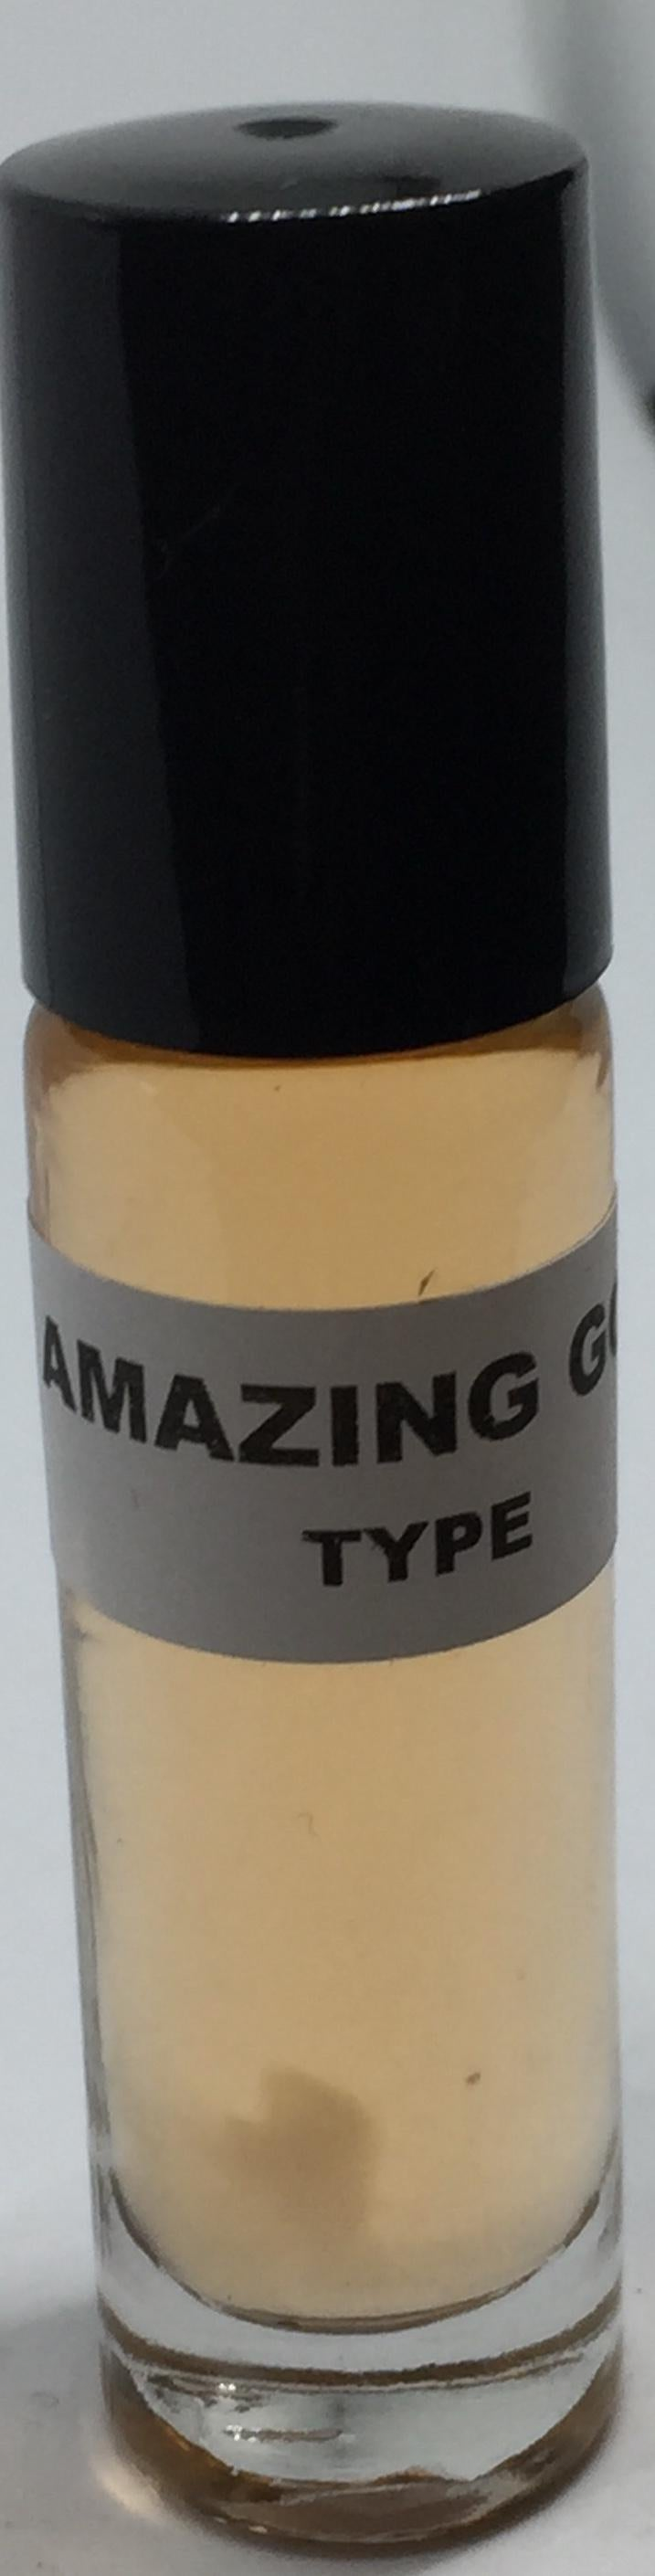 Amazing Gold Type: Fragrance(Perfume) Body Oil